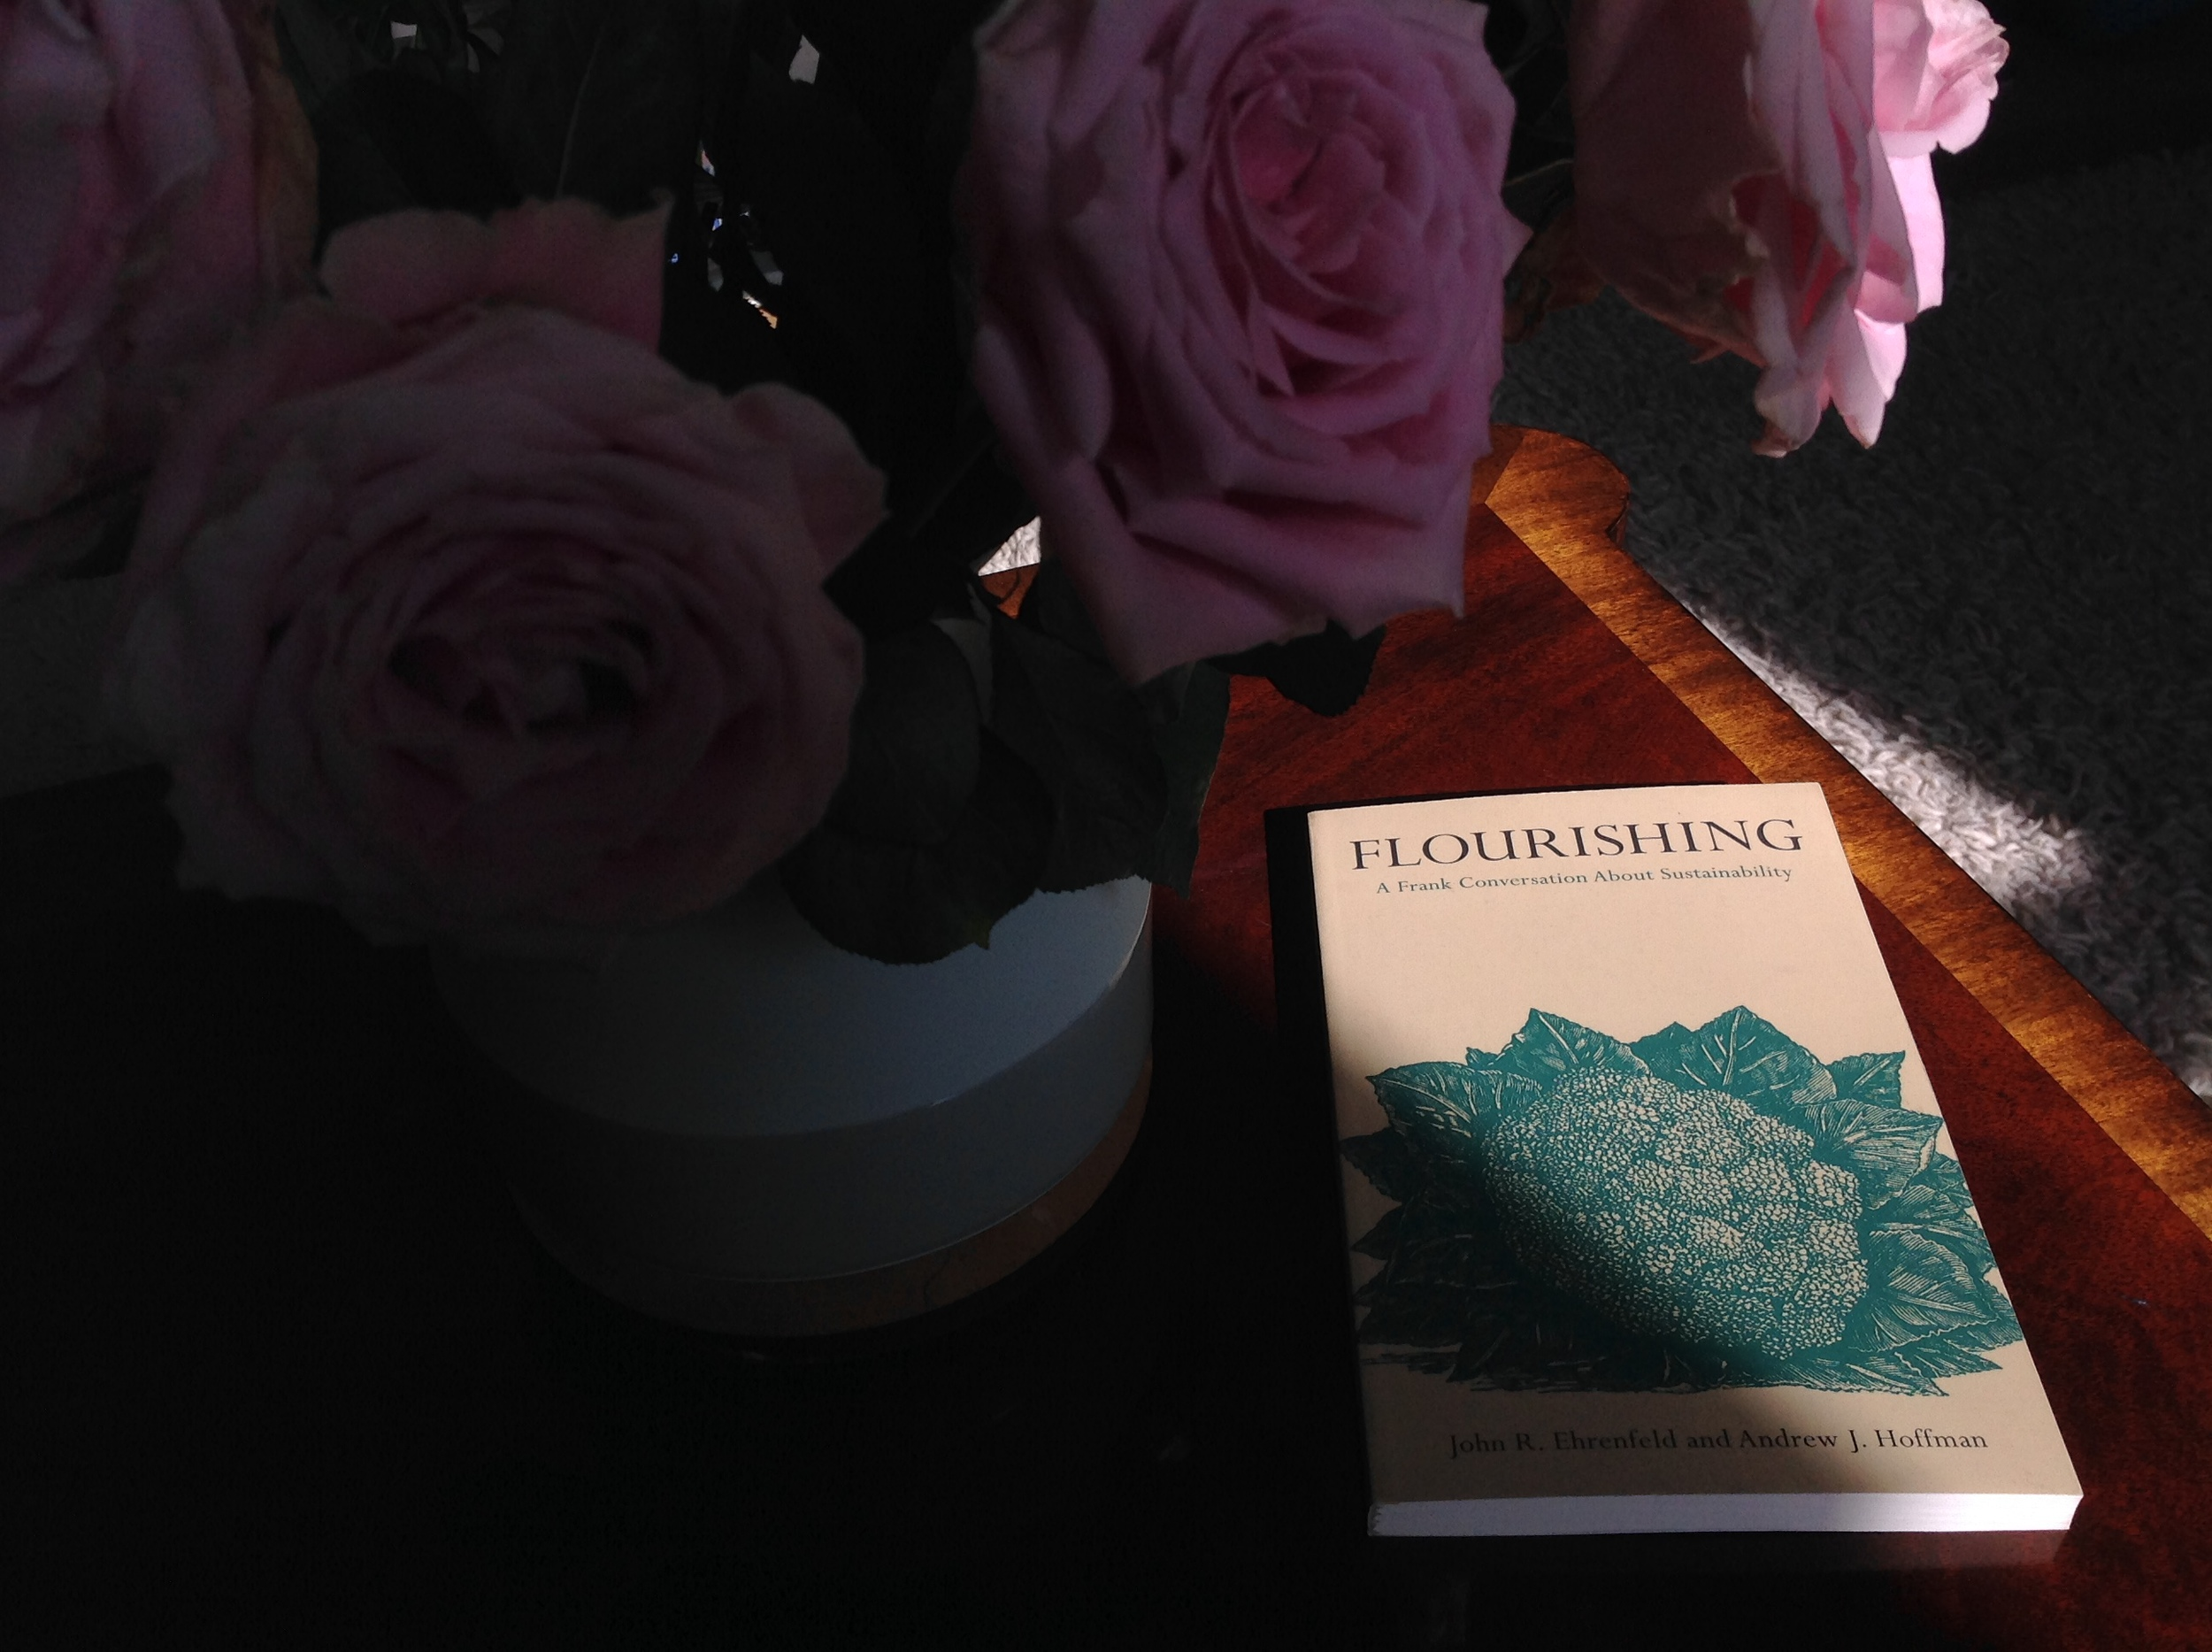 'Flourishing: A Frank Conversation About Sustainability' by John Ehrenfeld and Andrew Hoffman (Stanford, 2013)